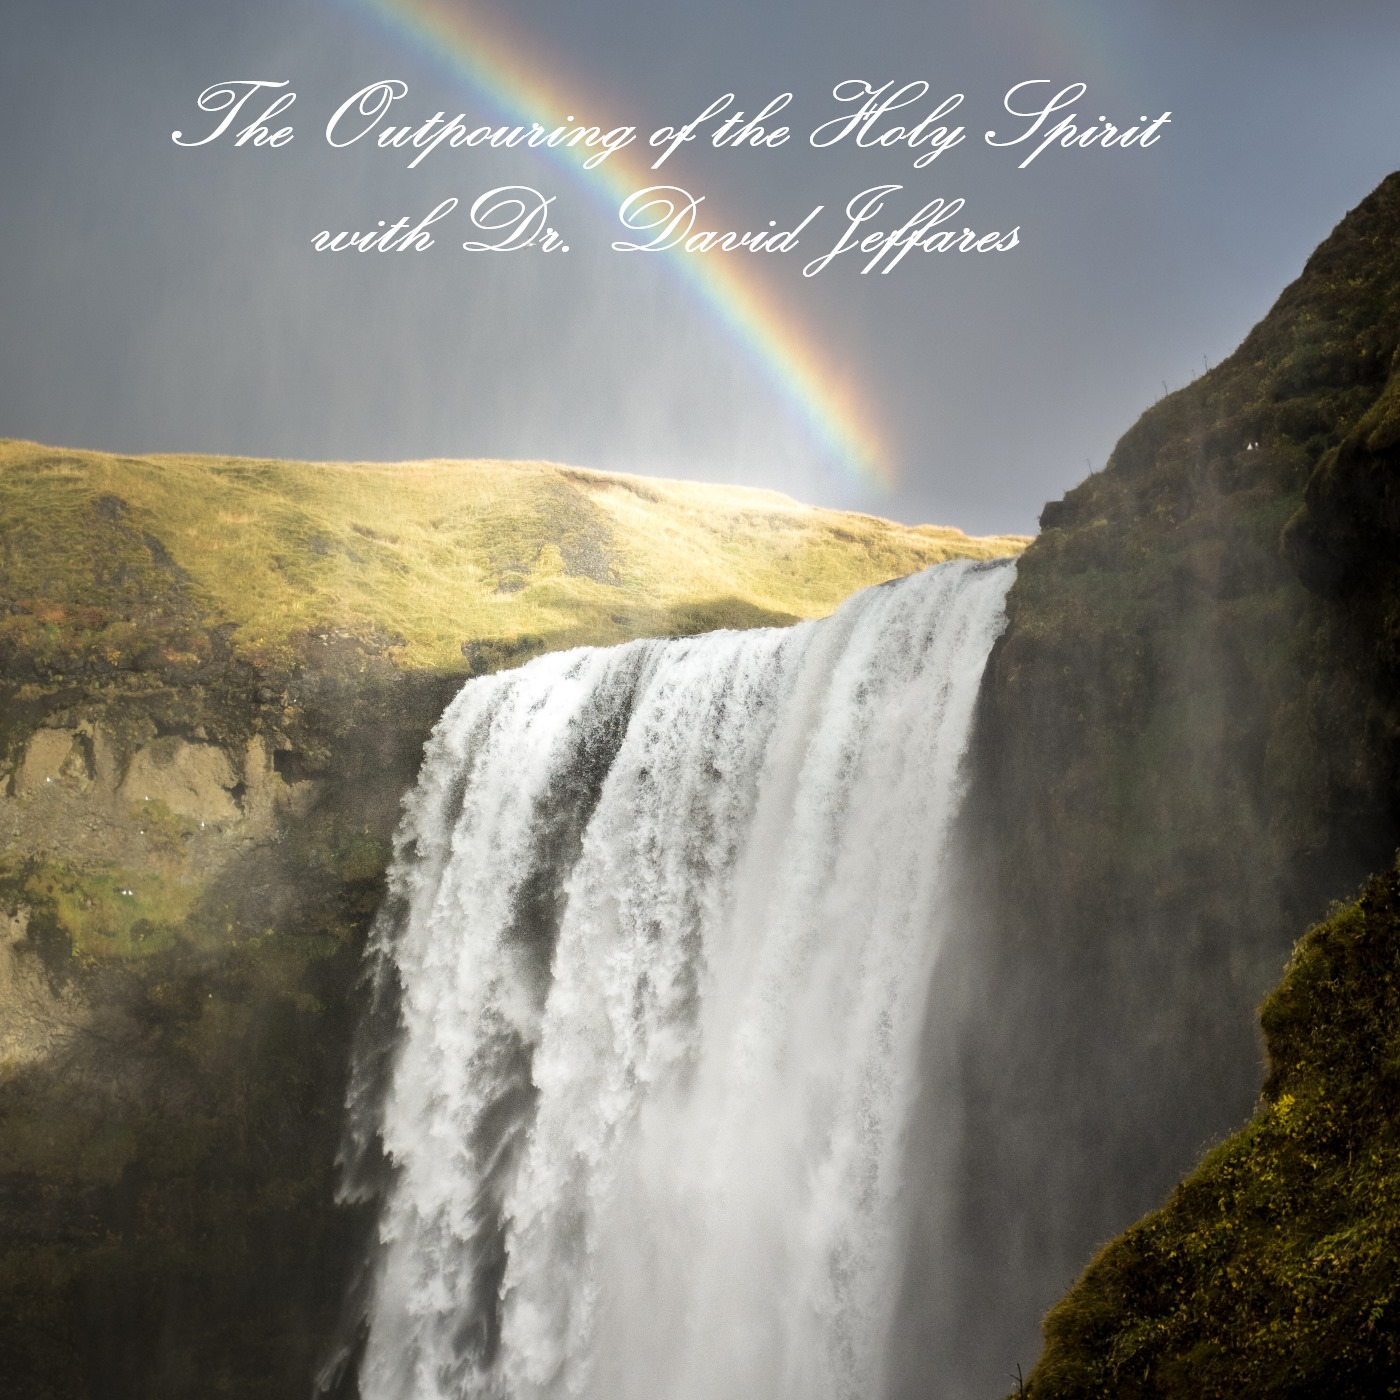 The Outpouring with Dr. David Jeffares